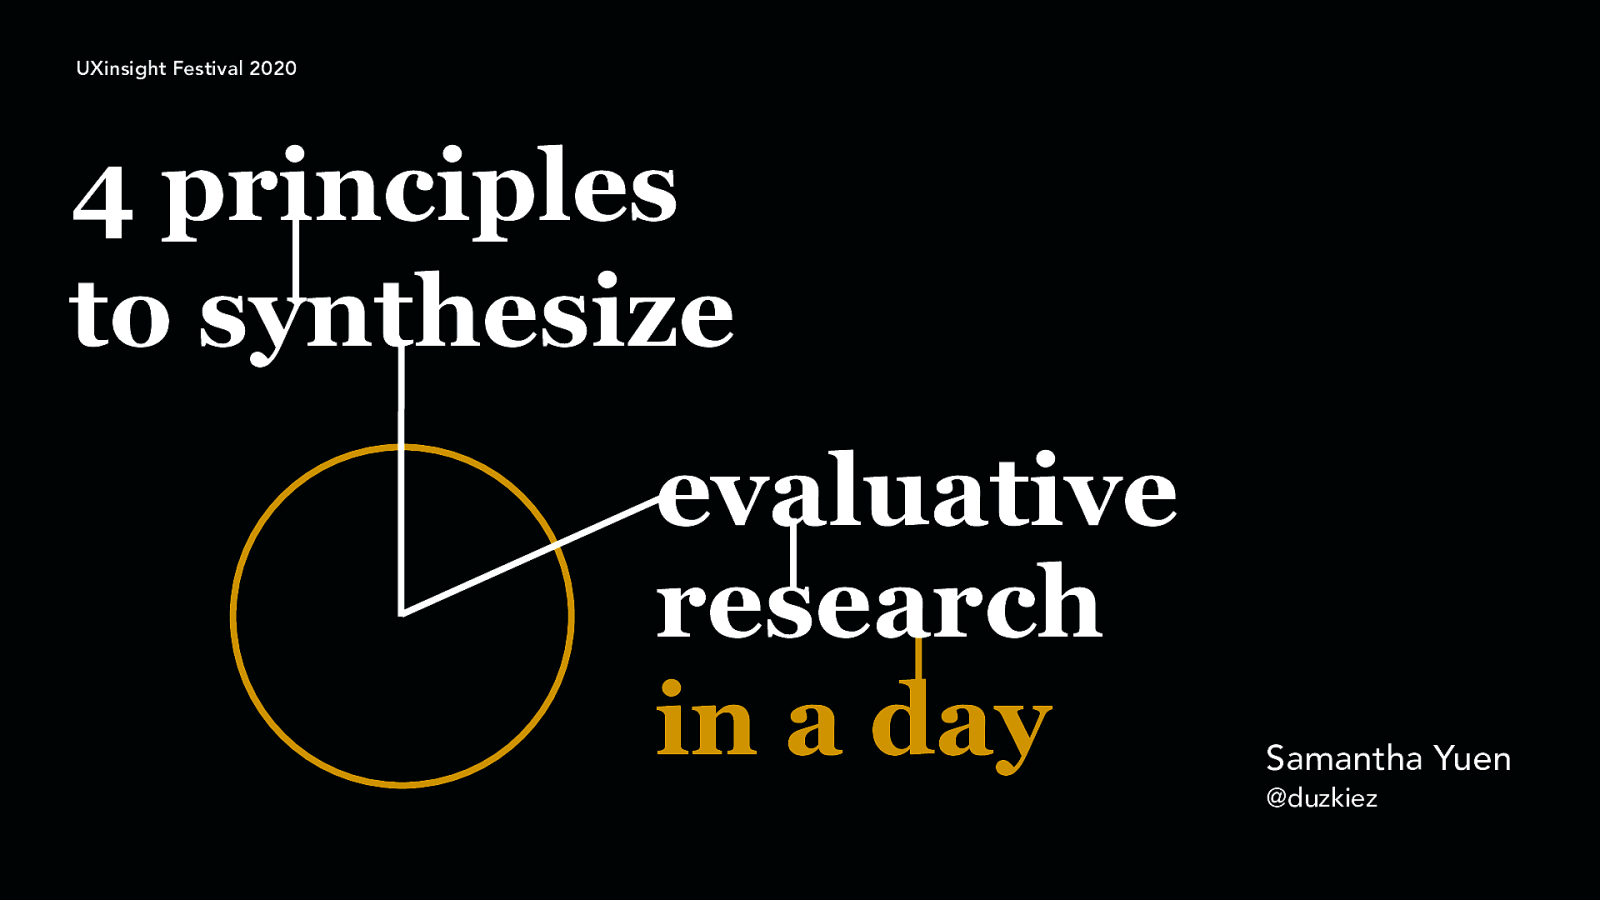 4 principles to synthesize evaluative research in a day